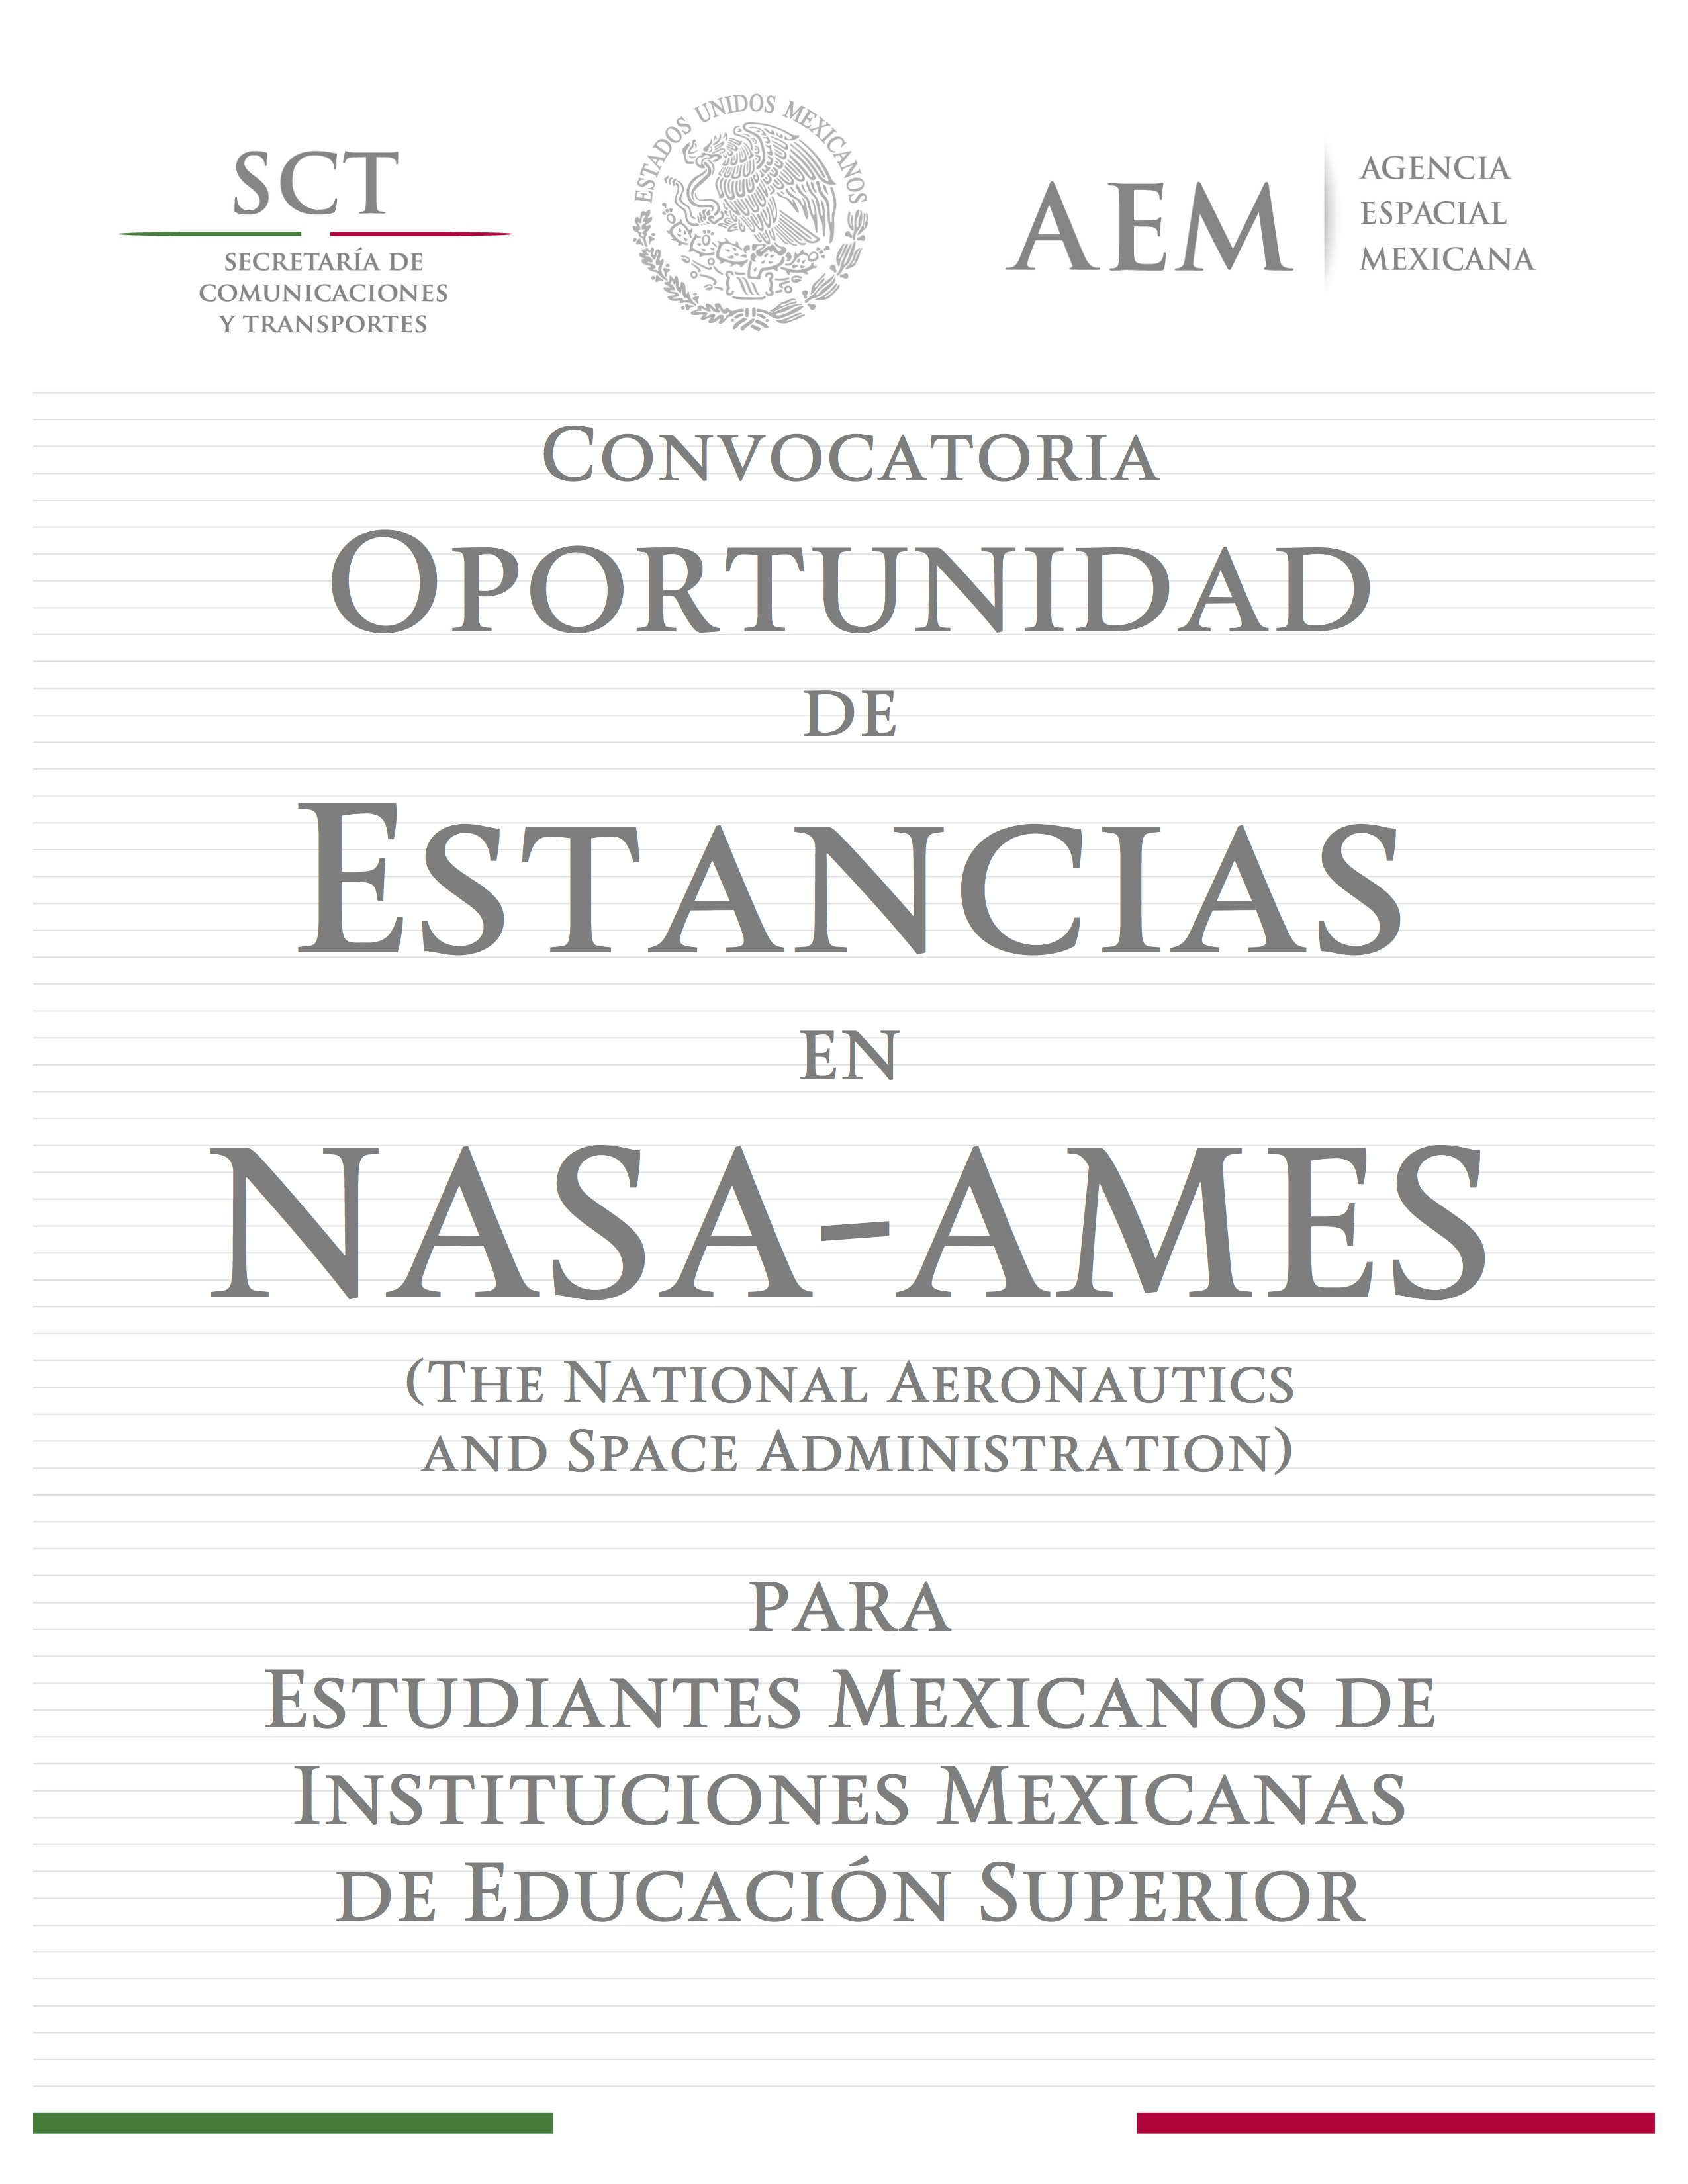 Convocatoria Estancias NASA Ames para dosmildiezyseis en PDF